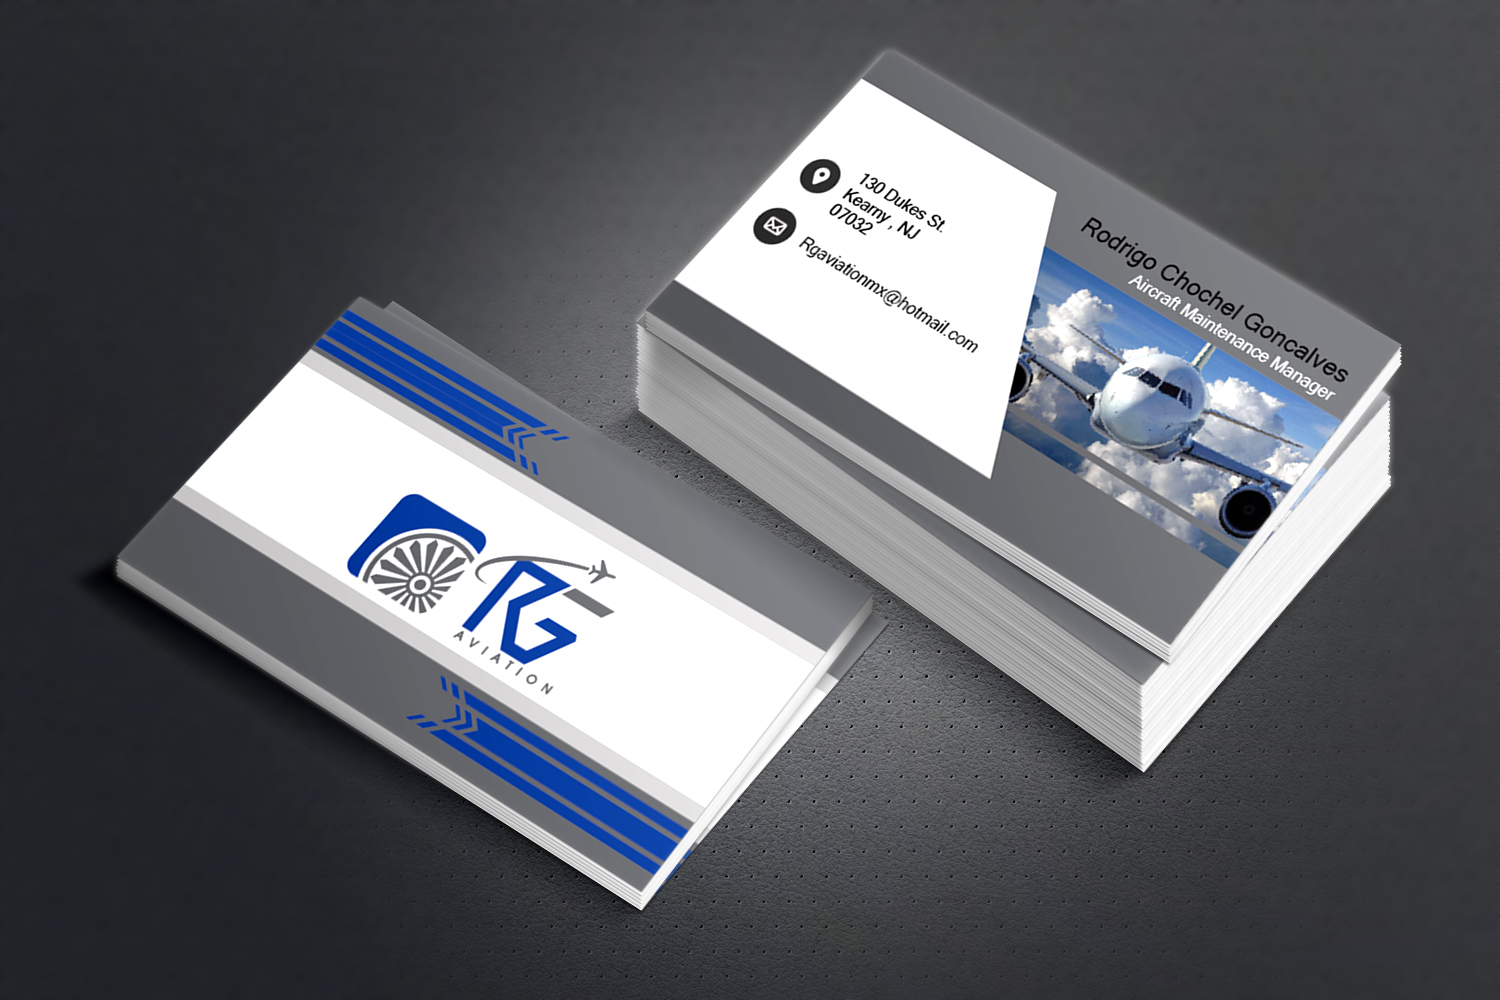 Elegant upmarket aviation business card design for west hudson business card design by loyal designer for west hudson construction llc design 15129757 colourmoves